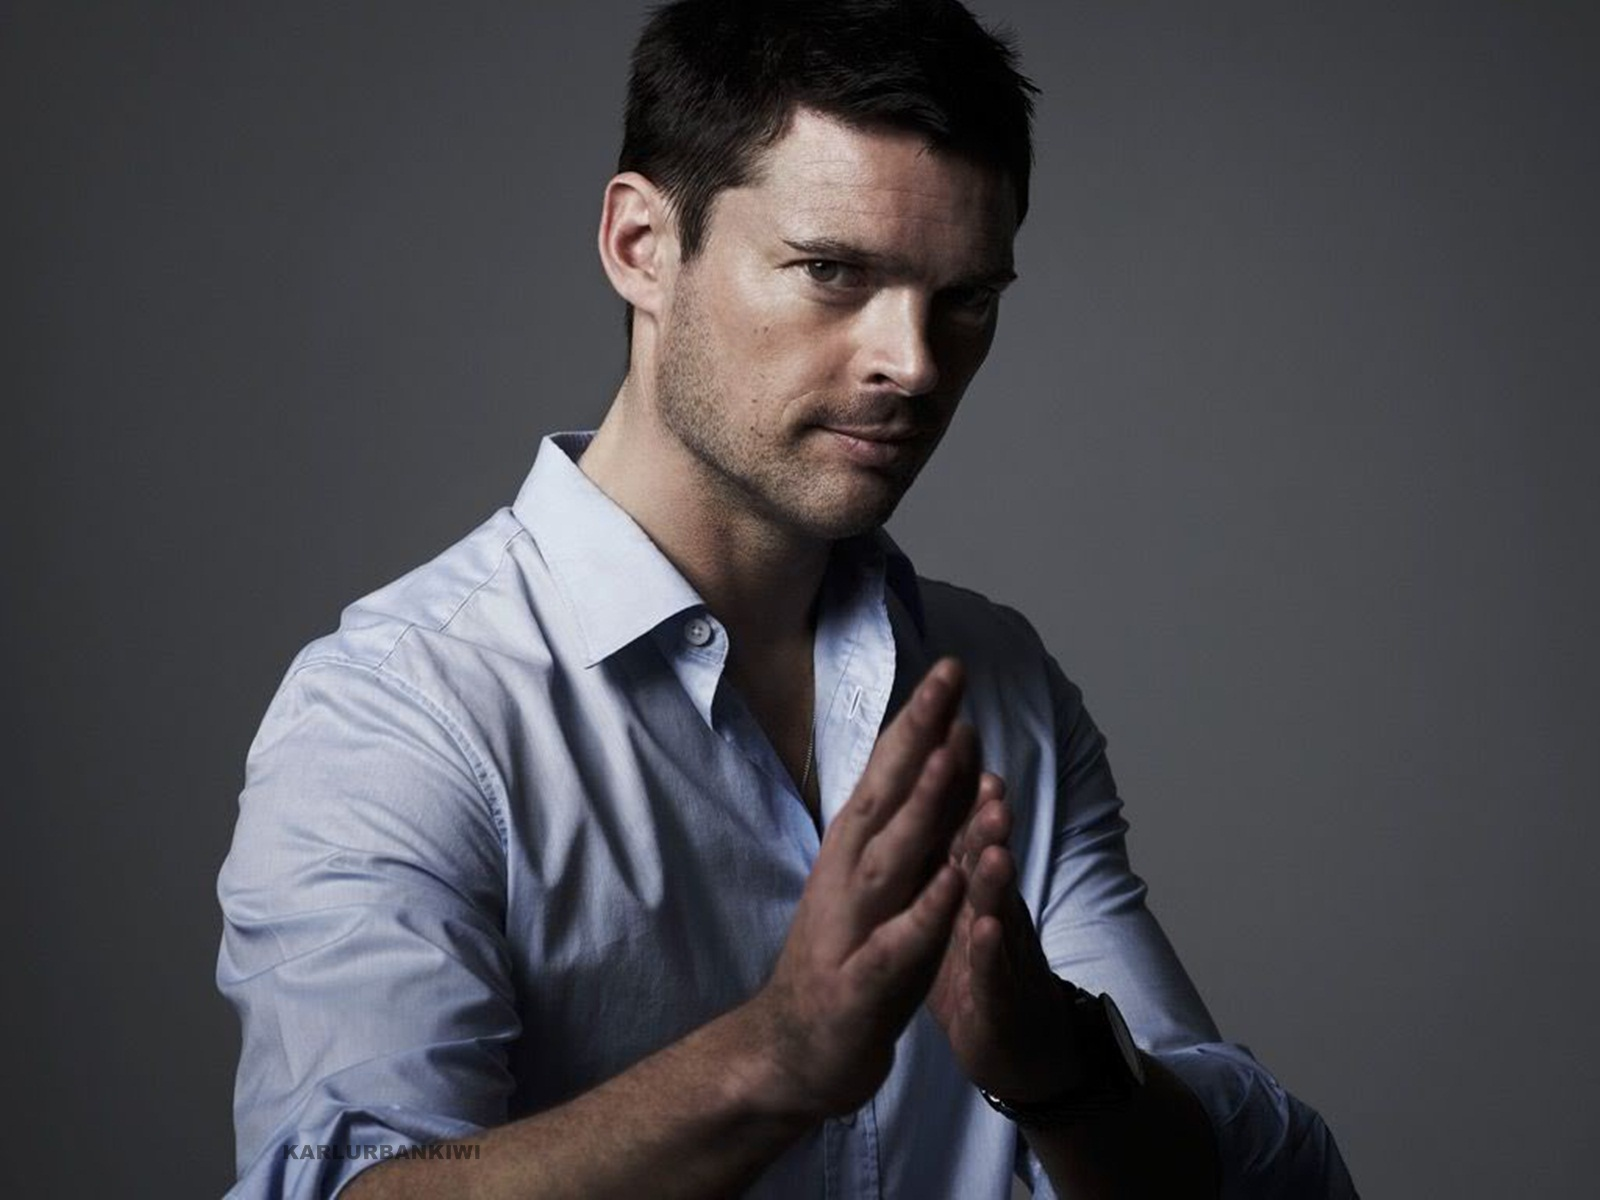 Karl Urban Wallpapers Images Photos Pictures Backgrounds